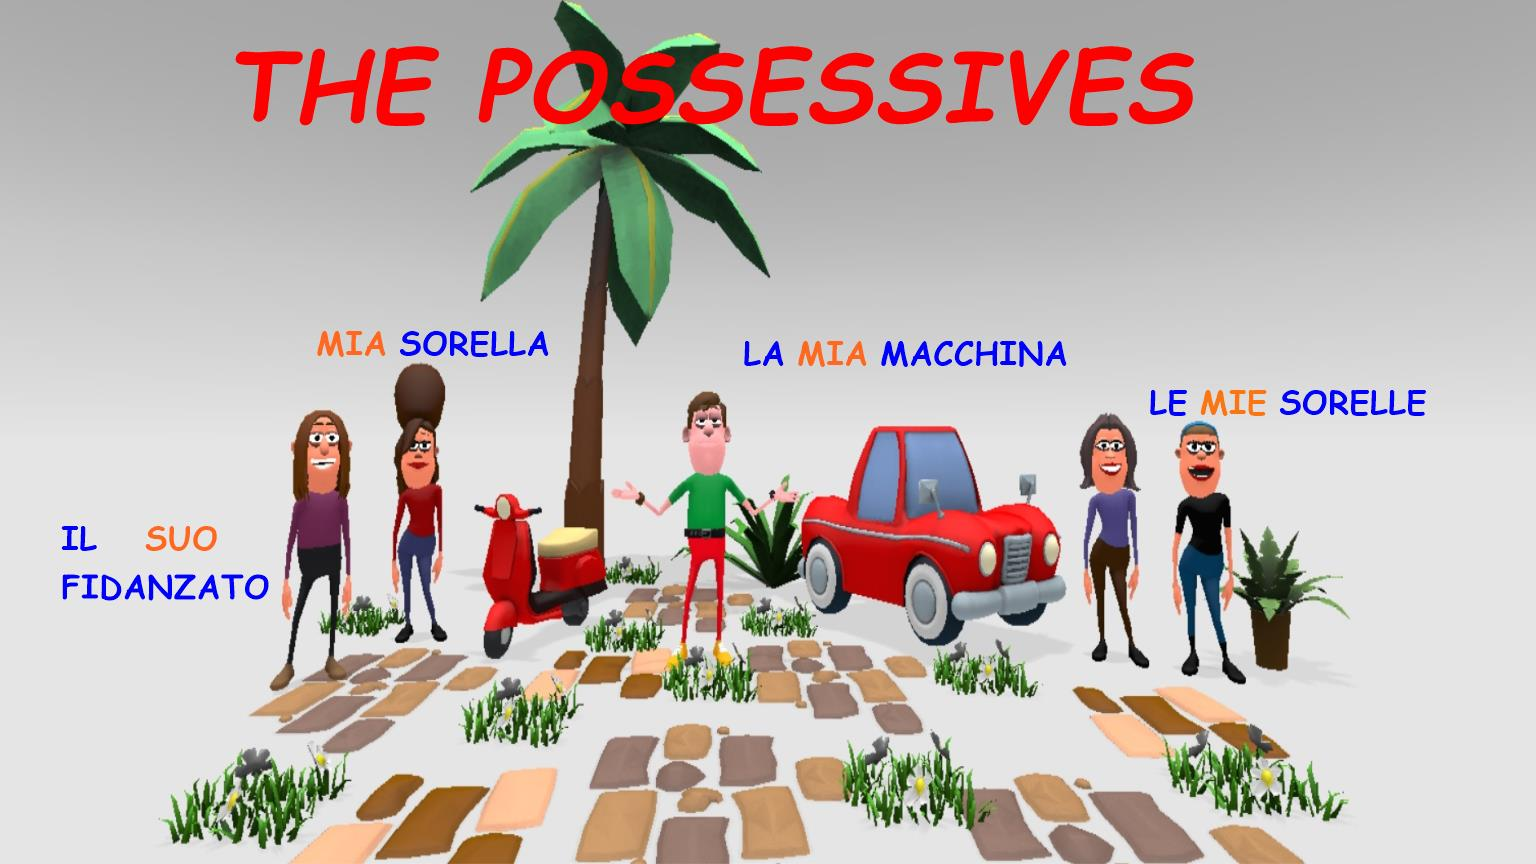 Gli Aggettivi Possessivi Italian Possessive Adjectives T